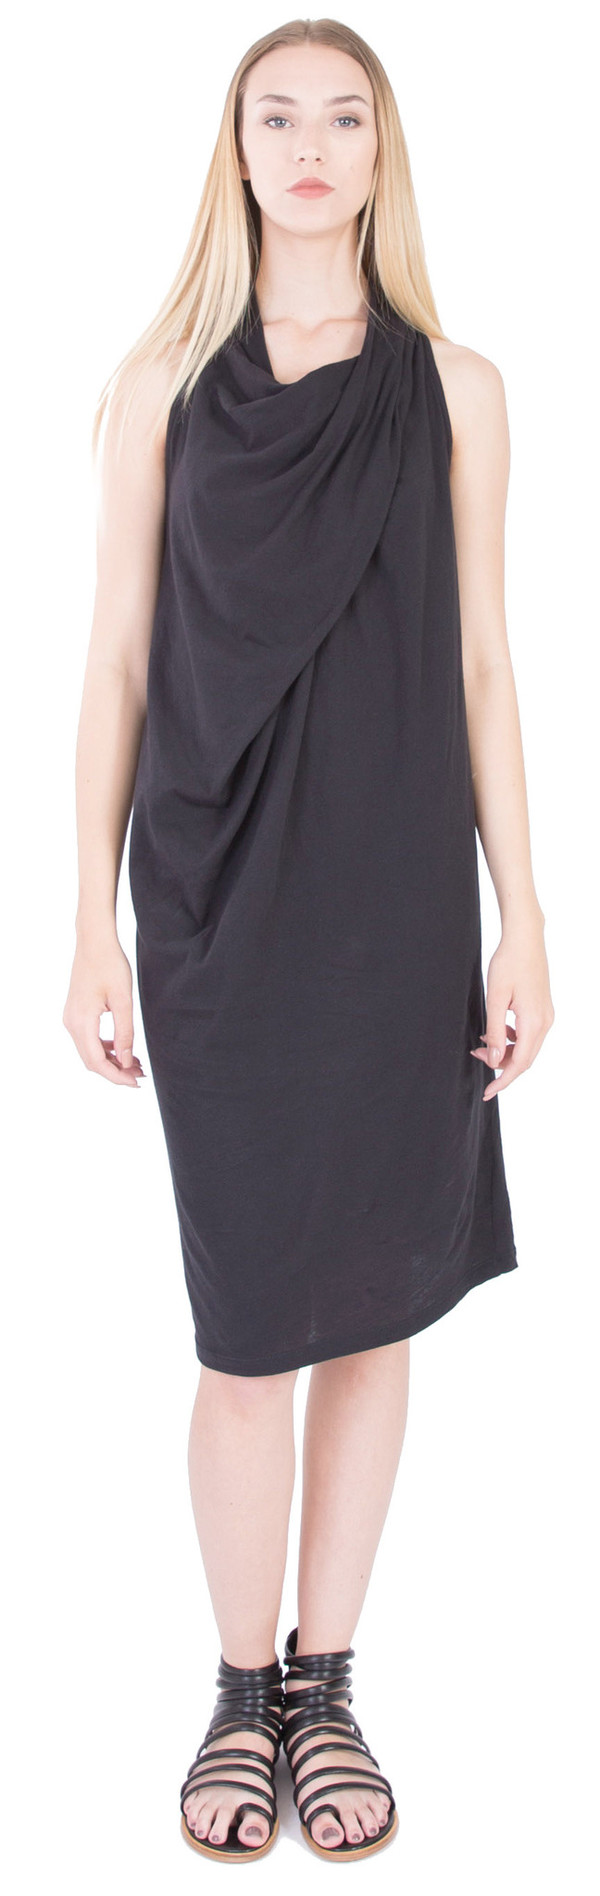 LILYA Rivington Dress in Black